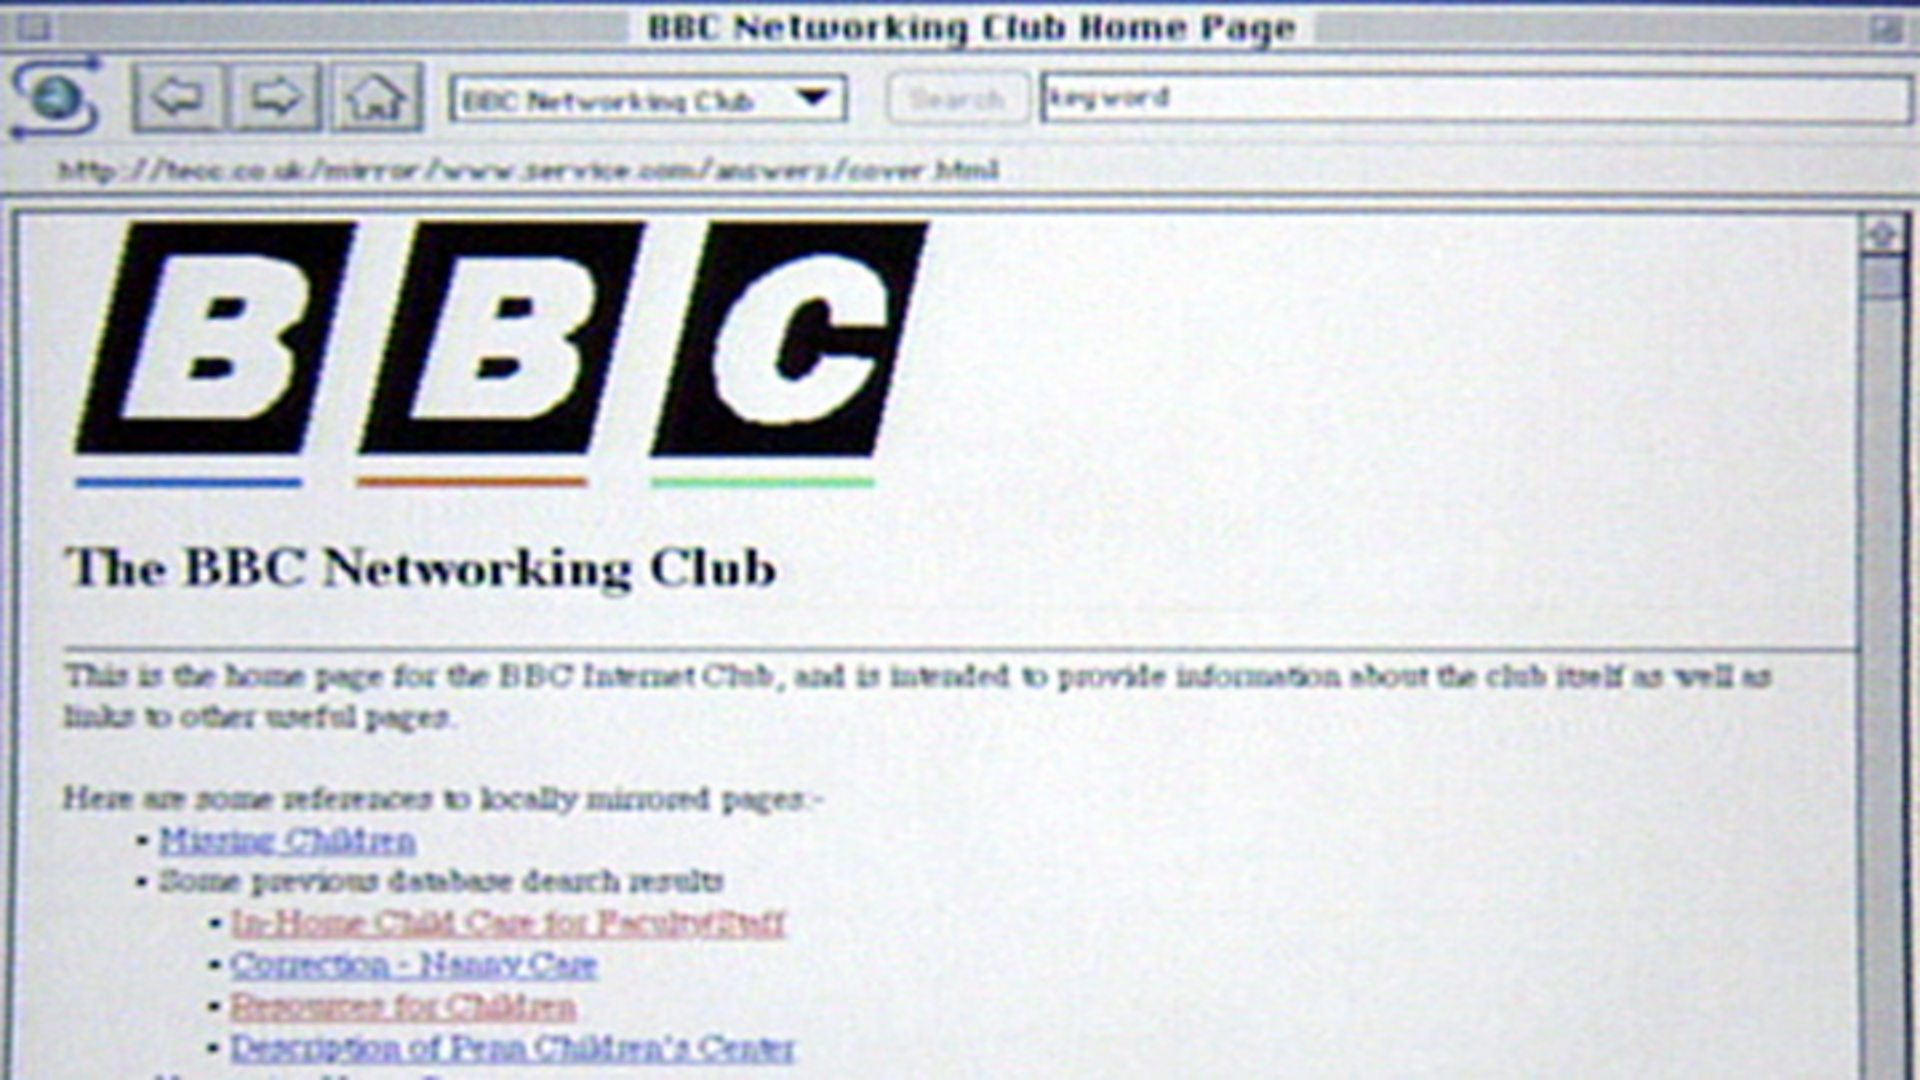 Launch of BBC Networking Club - History of the BBC